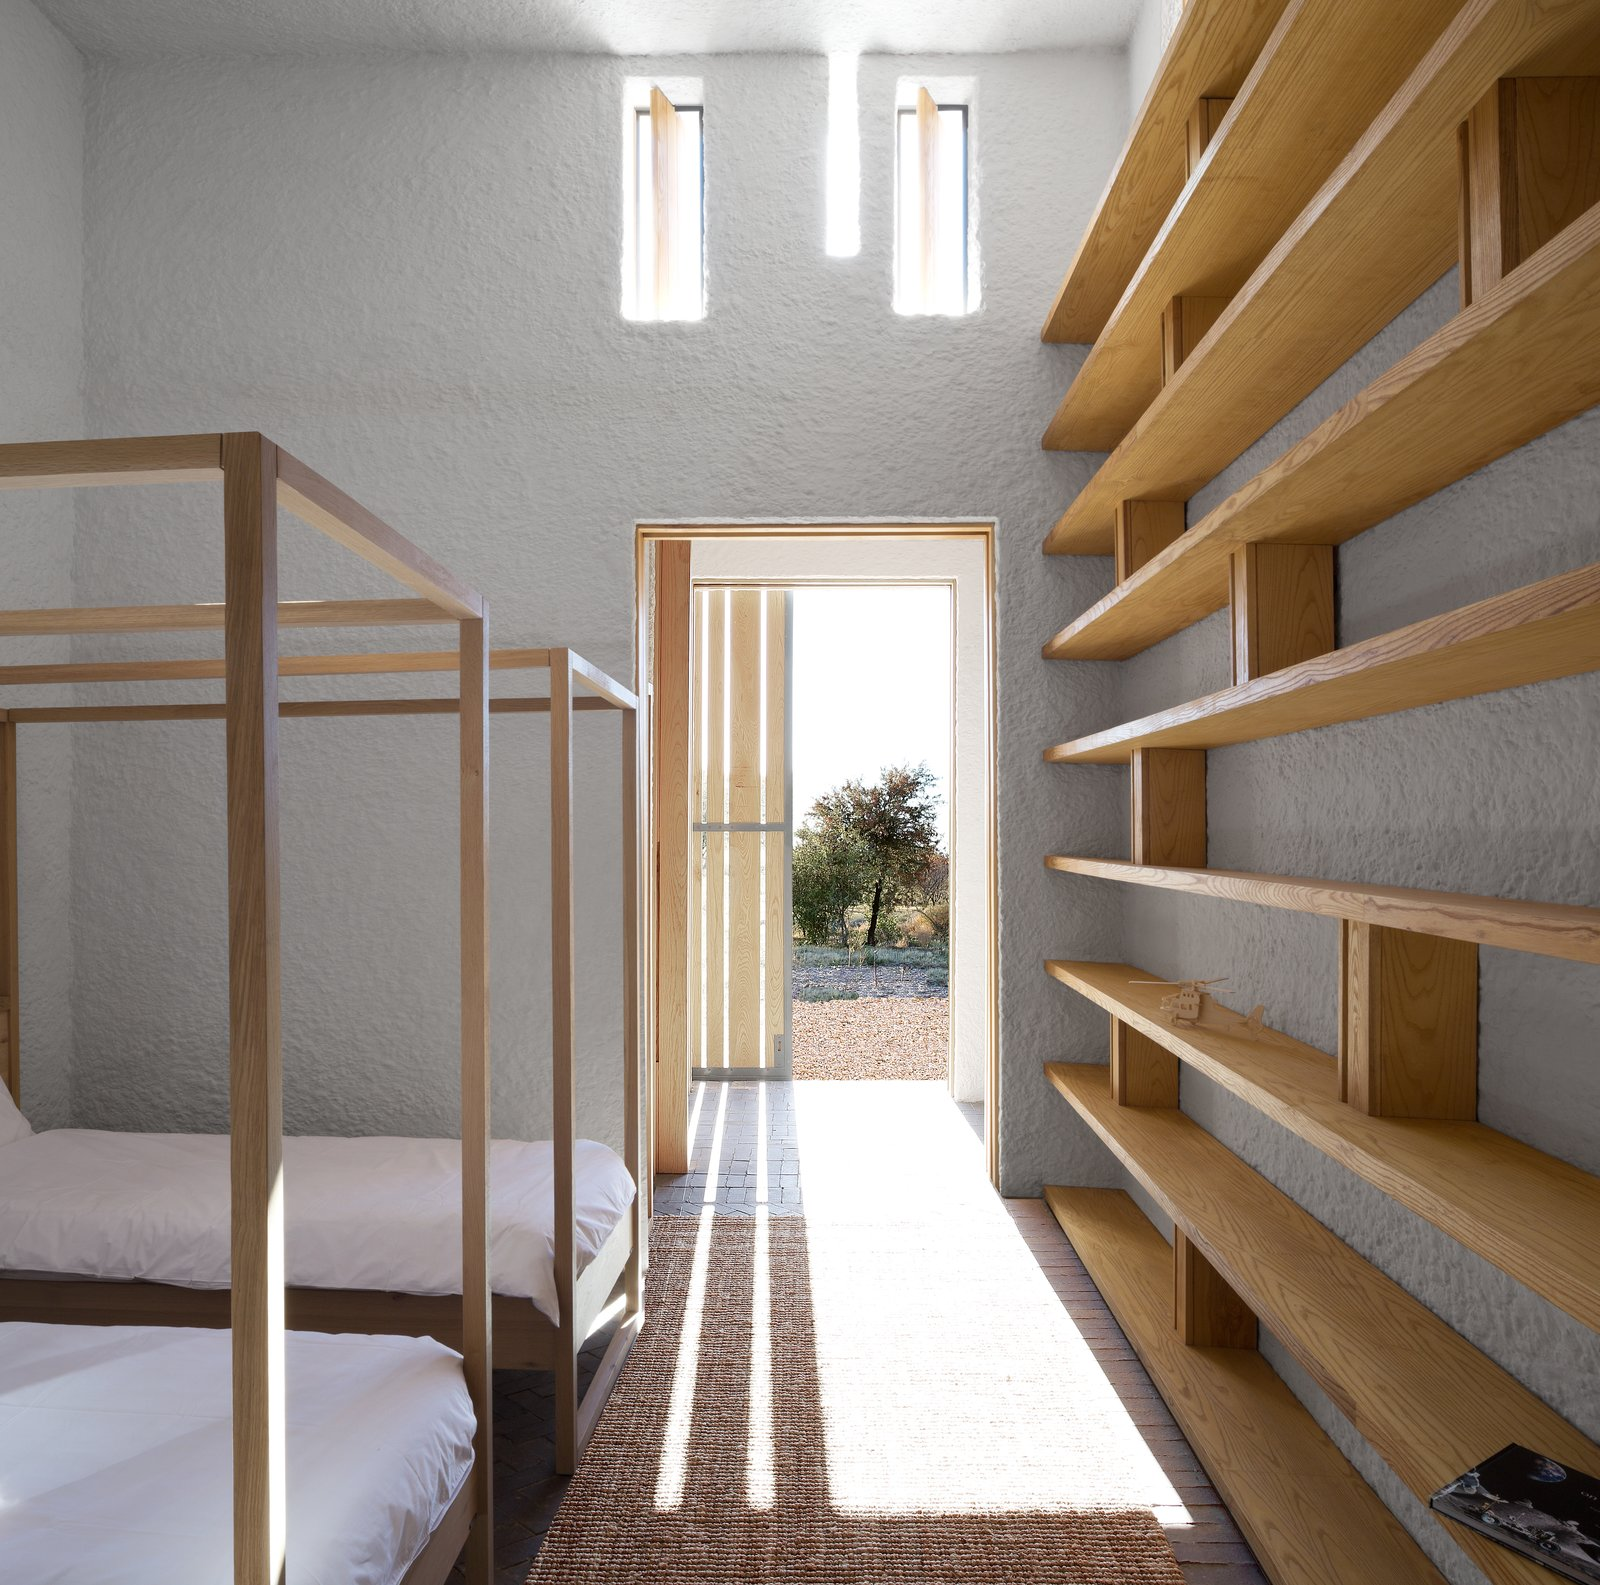 Openstudio worked with local builders, using a palette of regional materials: patterned brick, white ceramic tiles, and roughcast lime-washed plaster. Tagged: Bedroom and Bunks.  Photo 4 of 7 in A Minimalist Retreat at the Edge of South Africa's Karoo Desert